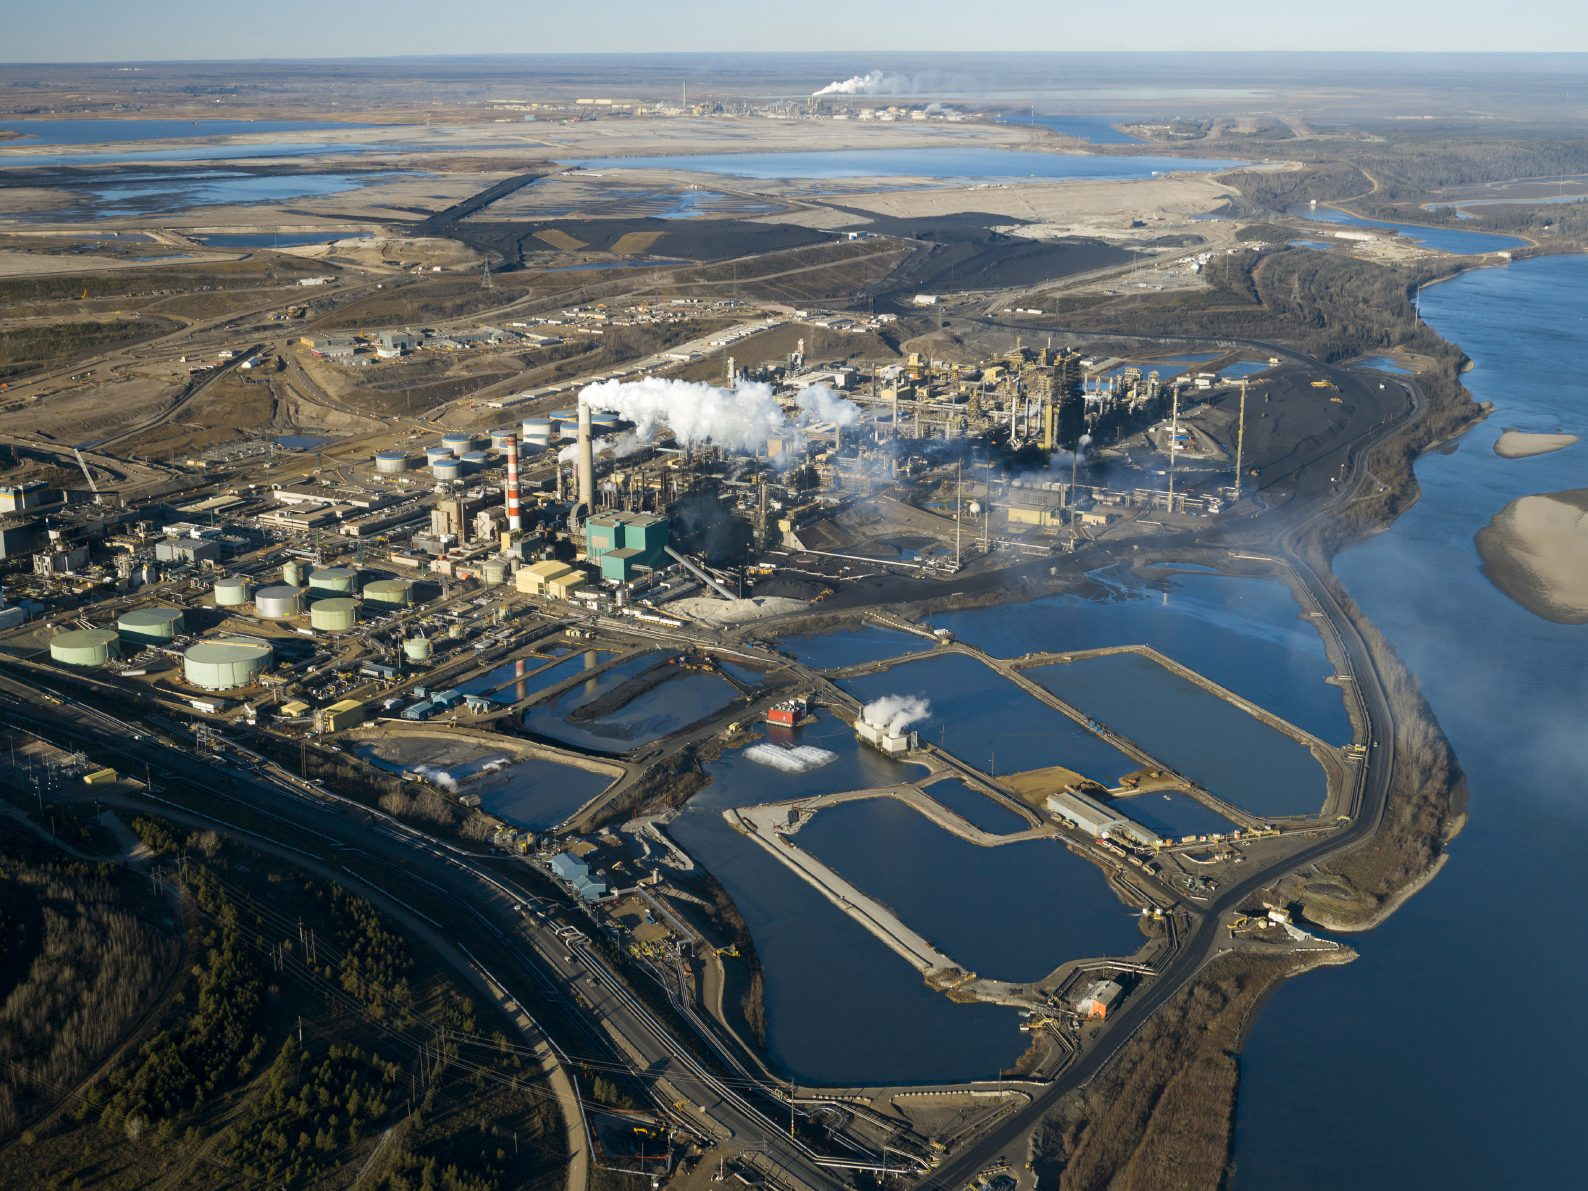 10. Fort McMurray, Alberta